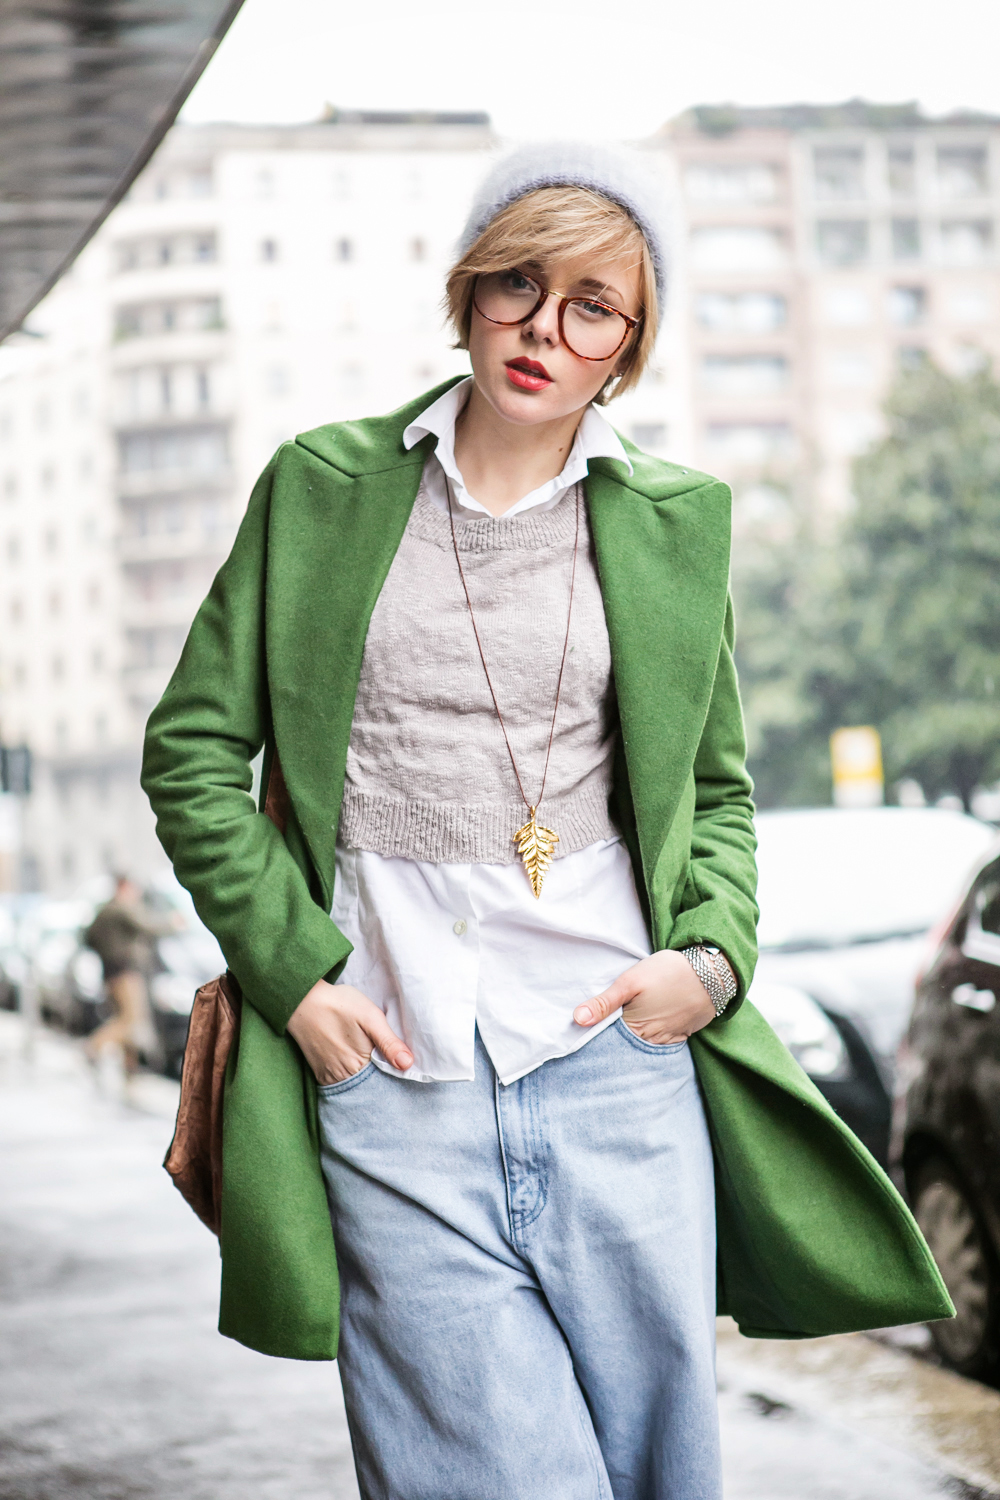 thecablook darya kamalova russian italian fashion blogger blonde short hair pixie cut street style milan fashion week mfw ports chicca lualdi givenchy pandora tory burch booties francesco scognamiglio fashion show cheap monday jeans-94